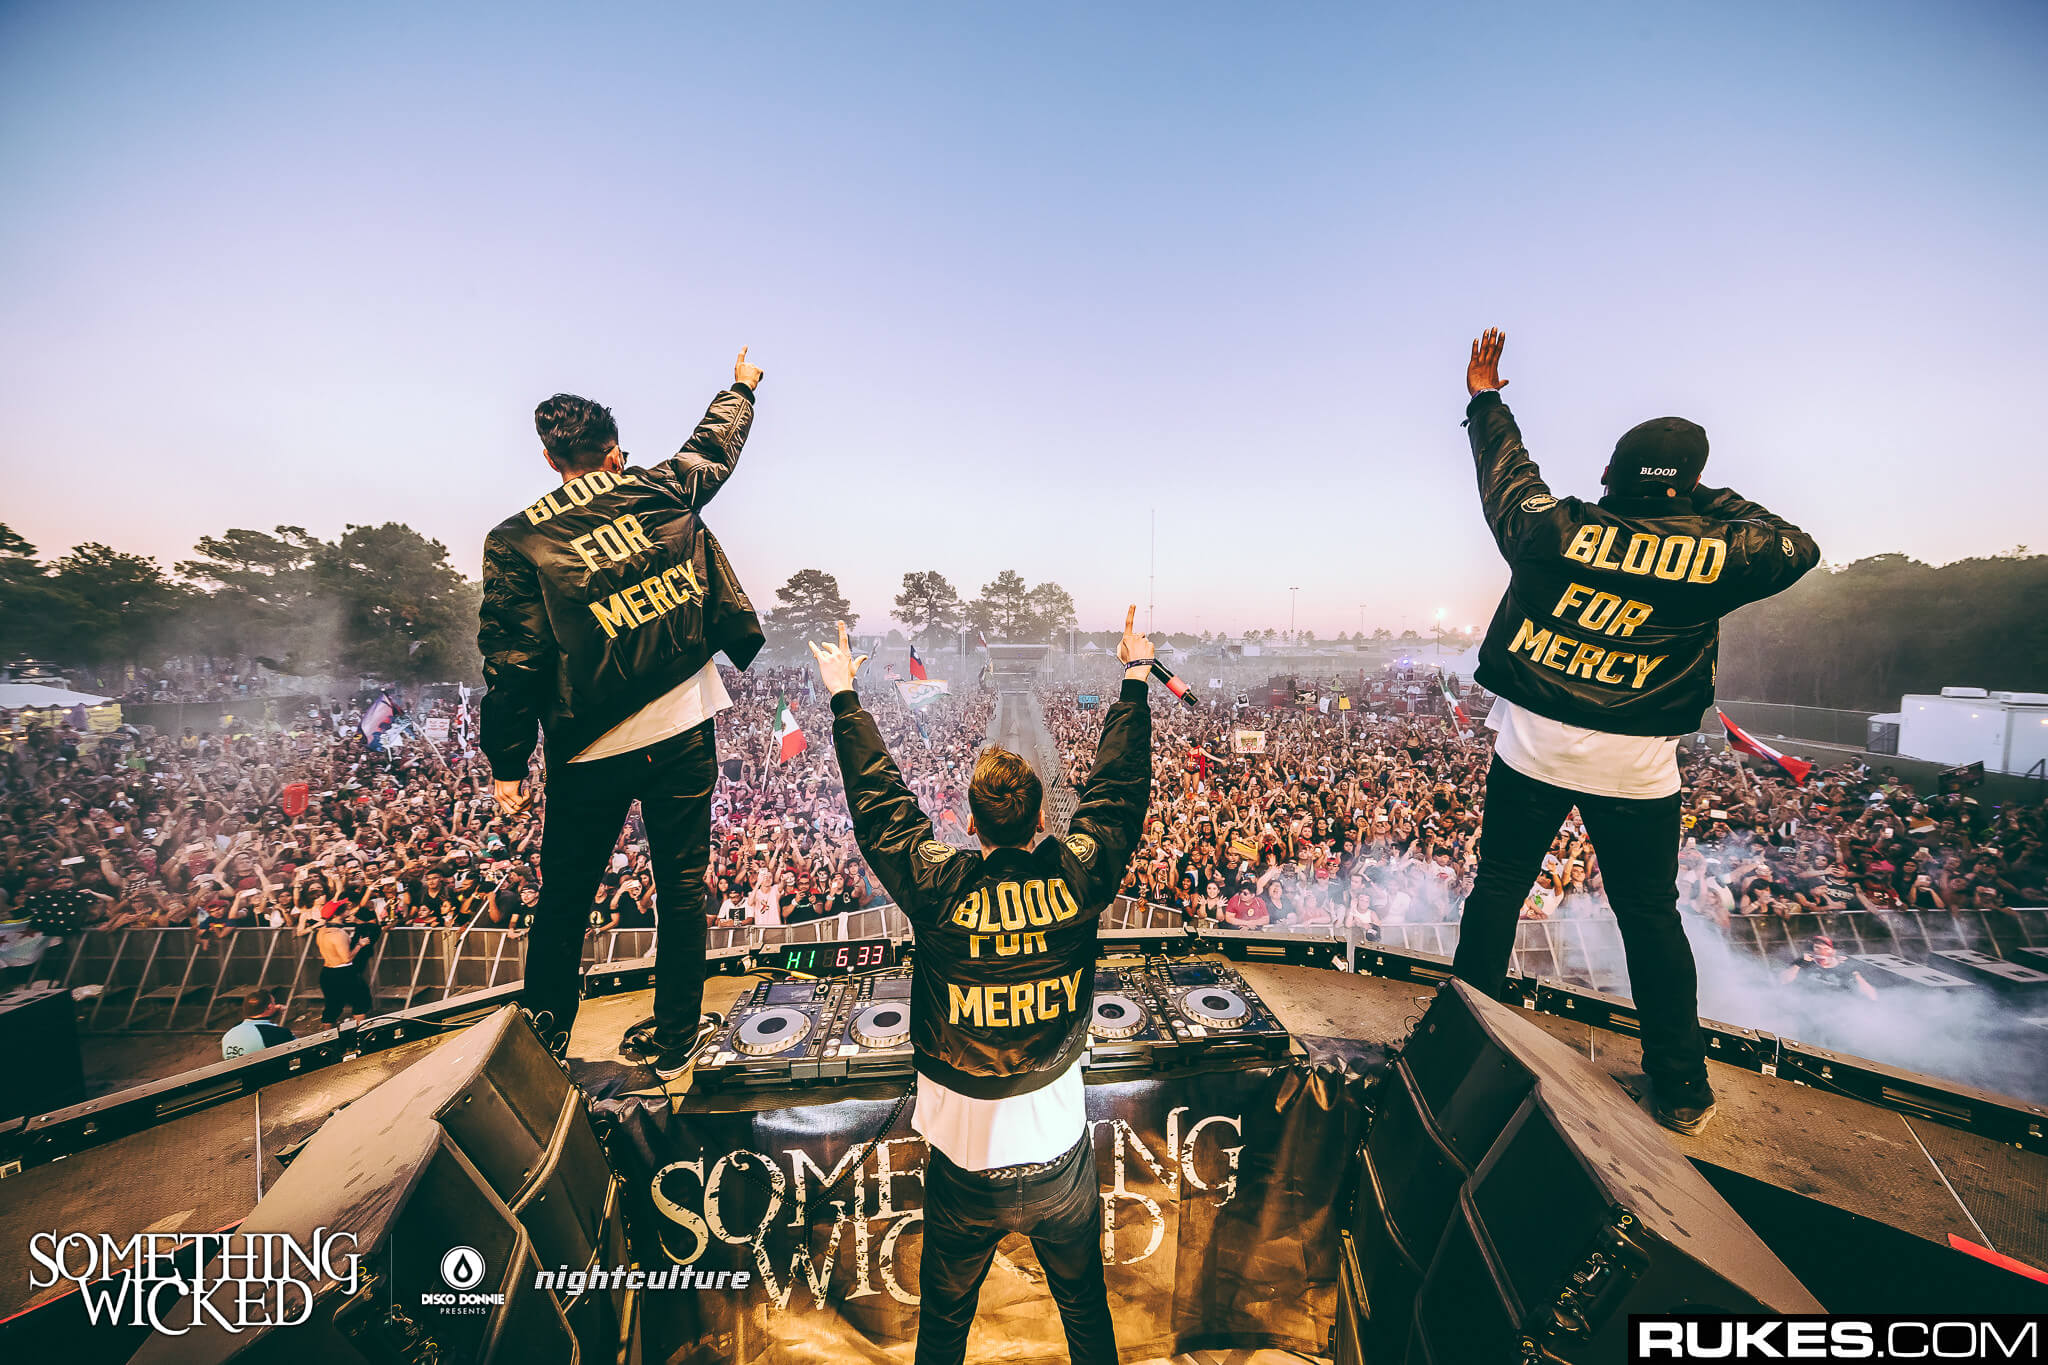 Yellow Claw performing at Something Wicked. Photo by Rukes.